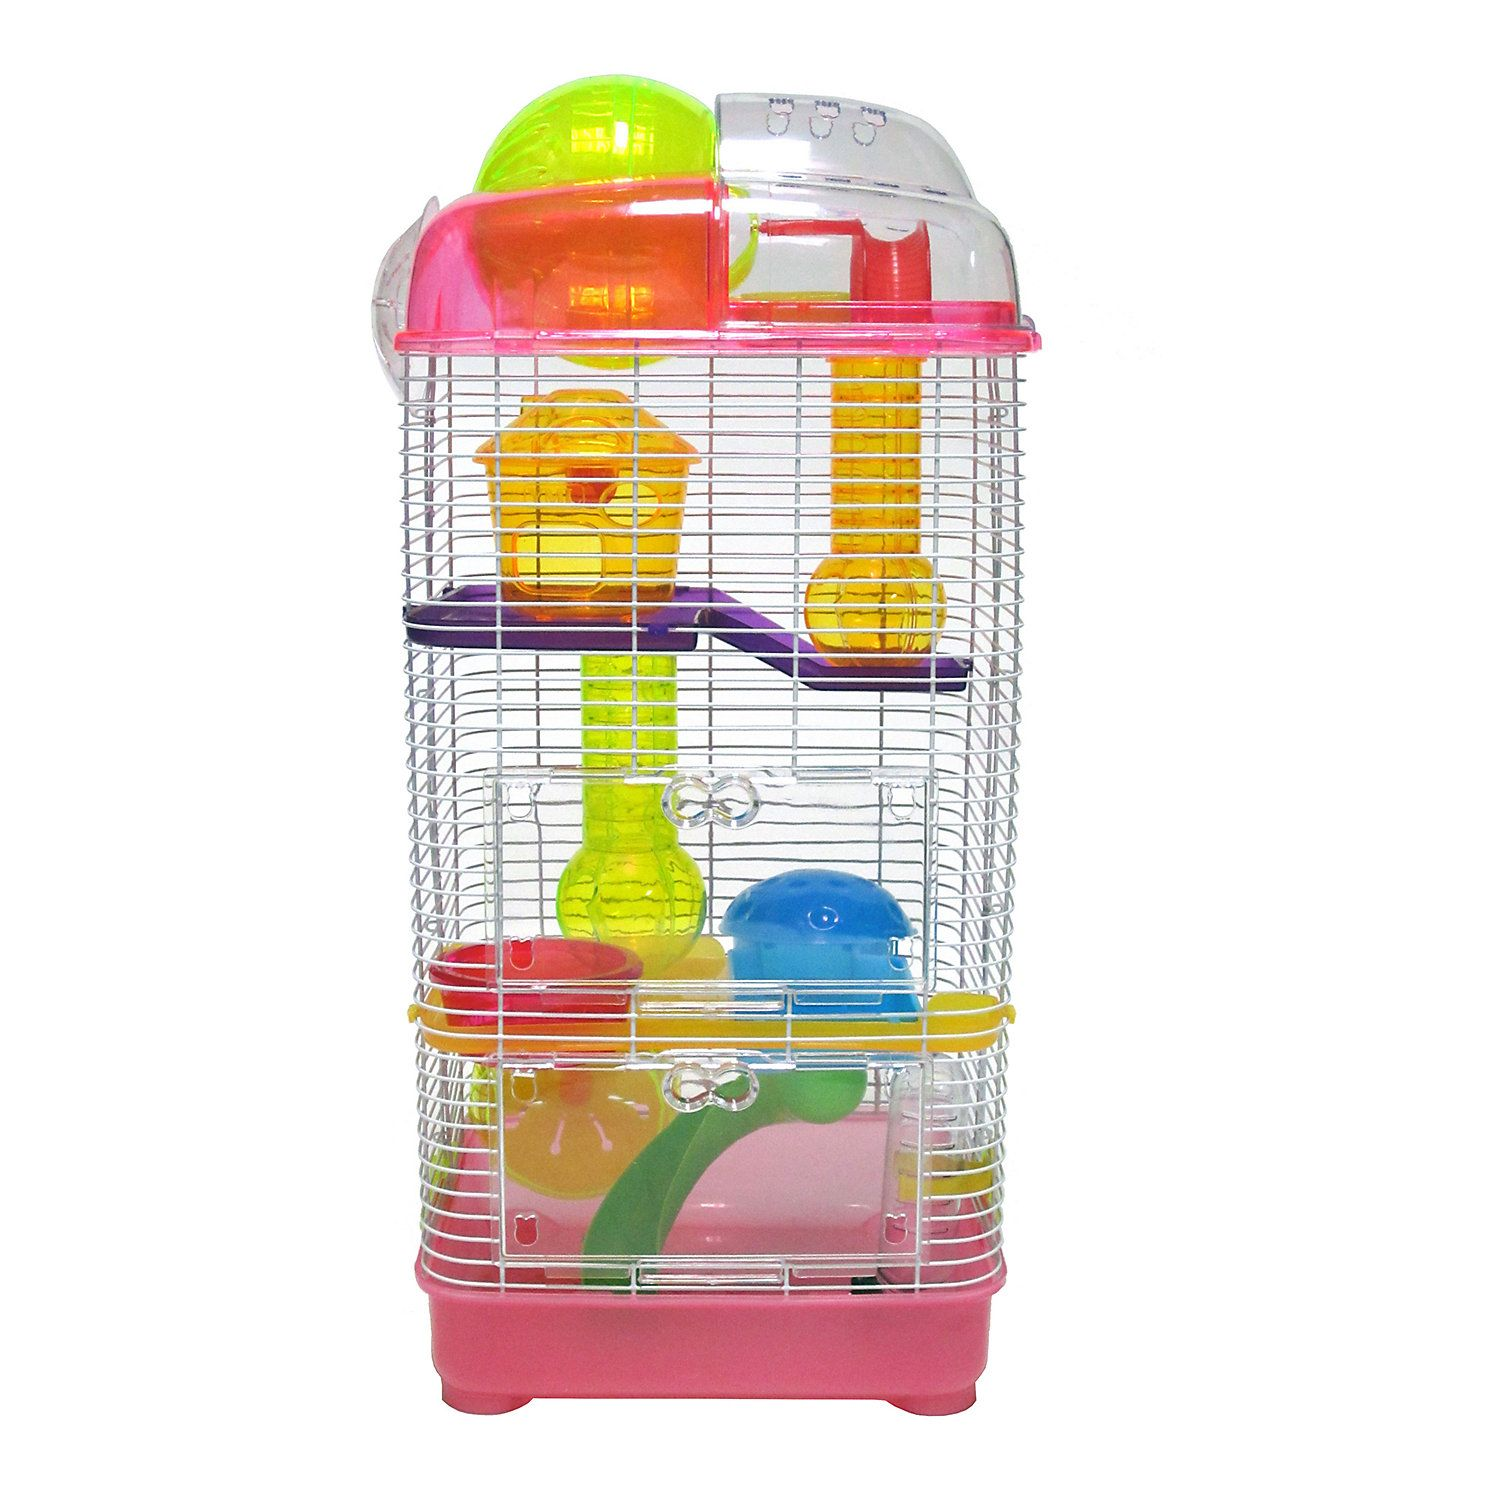 Yml 3 Level Plastic Clear Pink Hamster Cage 10 L X 10 W X 23